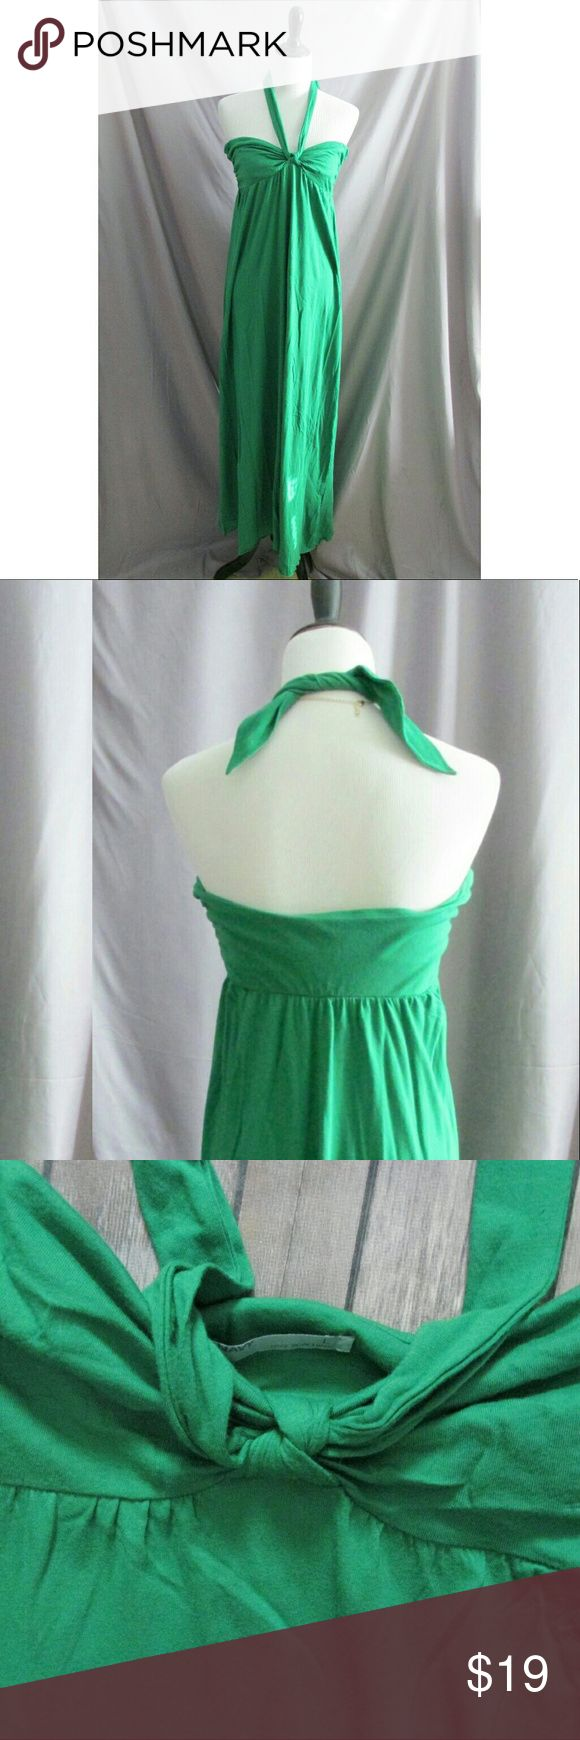 "Old Navy Green Bandeau Top Maxi Size L Old Navy Green Bandeau Top Maxi Size L  Condition: NWOT  Type: Dress Style: Maxi Brand: Old Navy Size: L Features: Built in bra Color: Green Measurements: 31"" Chest, 50"" Length Materials: 60% Cotton, 40% Modal Country of Manufacturer: Vietnam    Closet Note: length measured from the back to hem. Pictures do no justice to the color. It is a beautiful grass green.  DD 6.3.17 Old Navy Dresses Maxi"